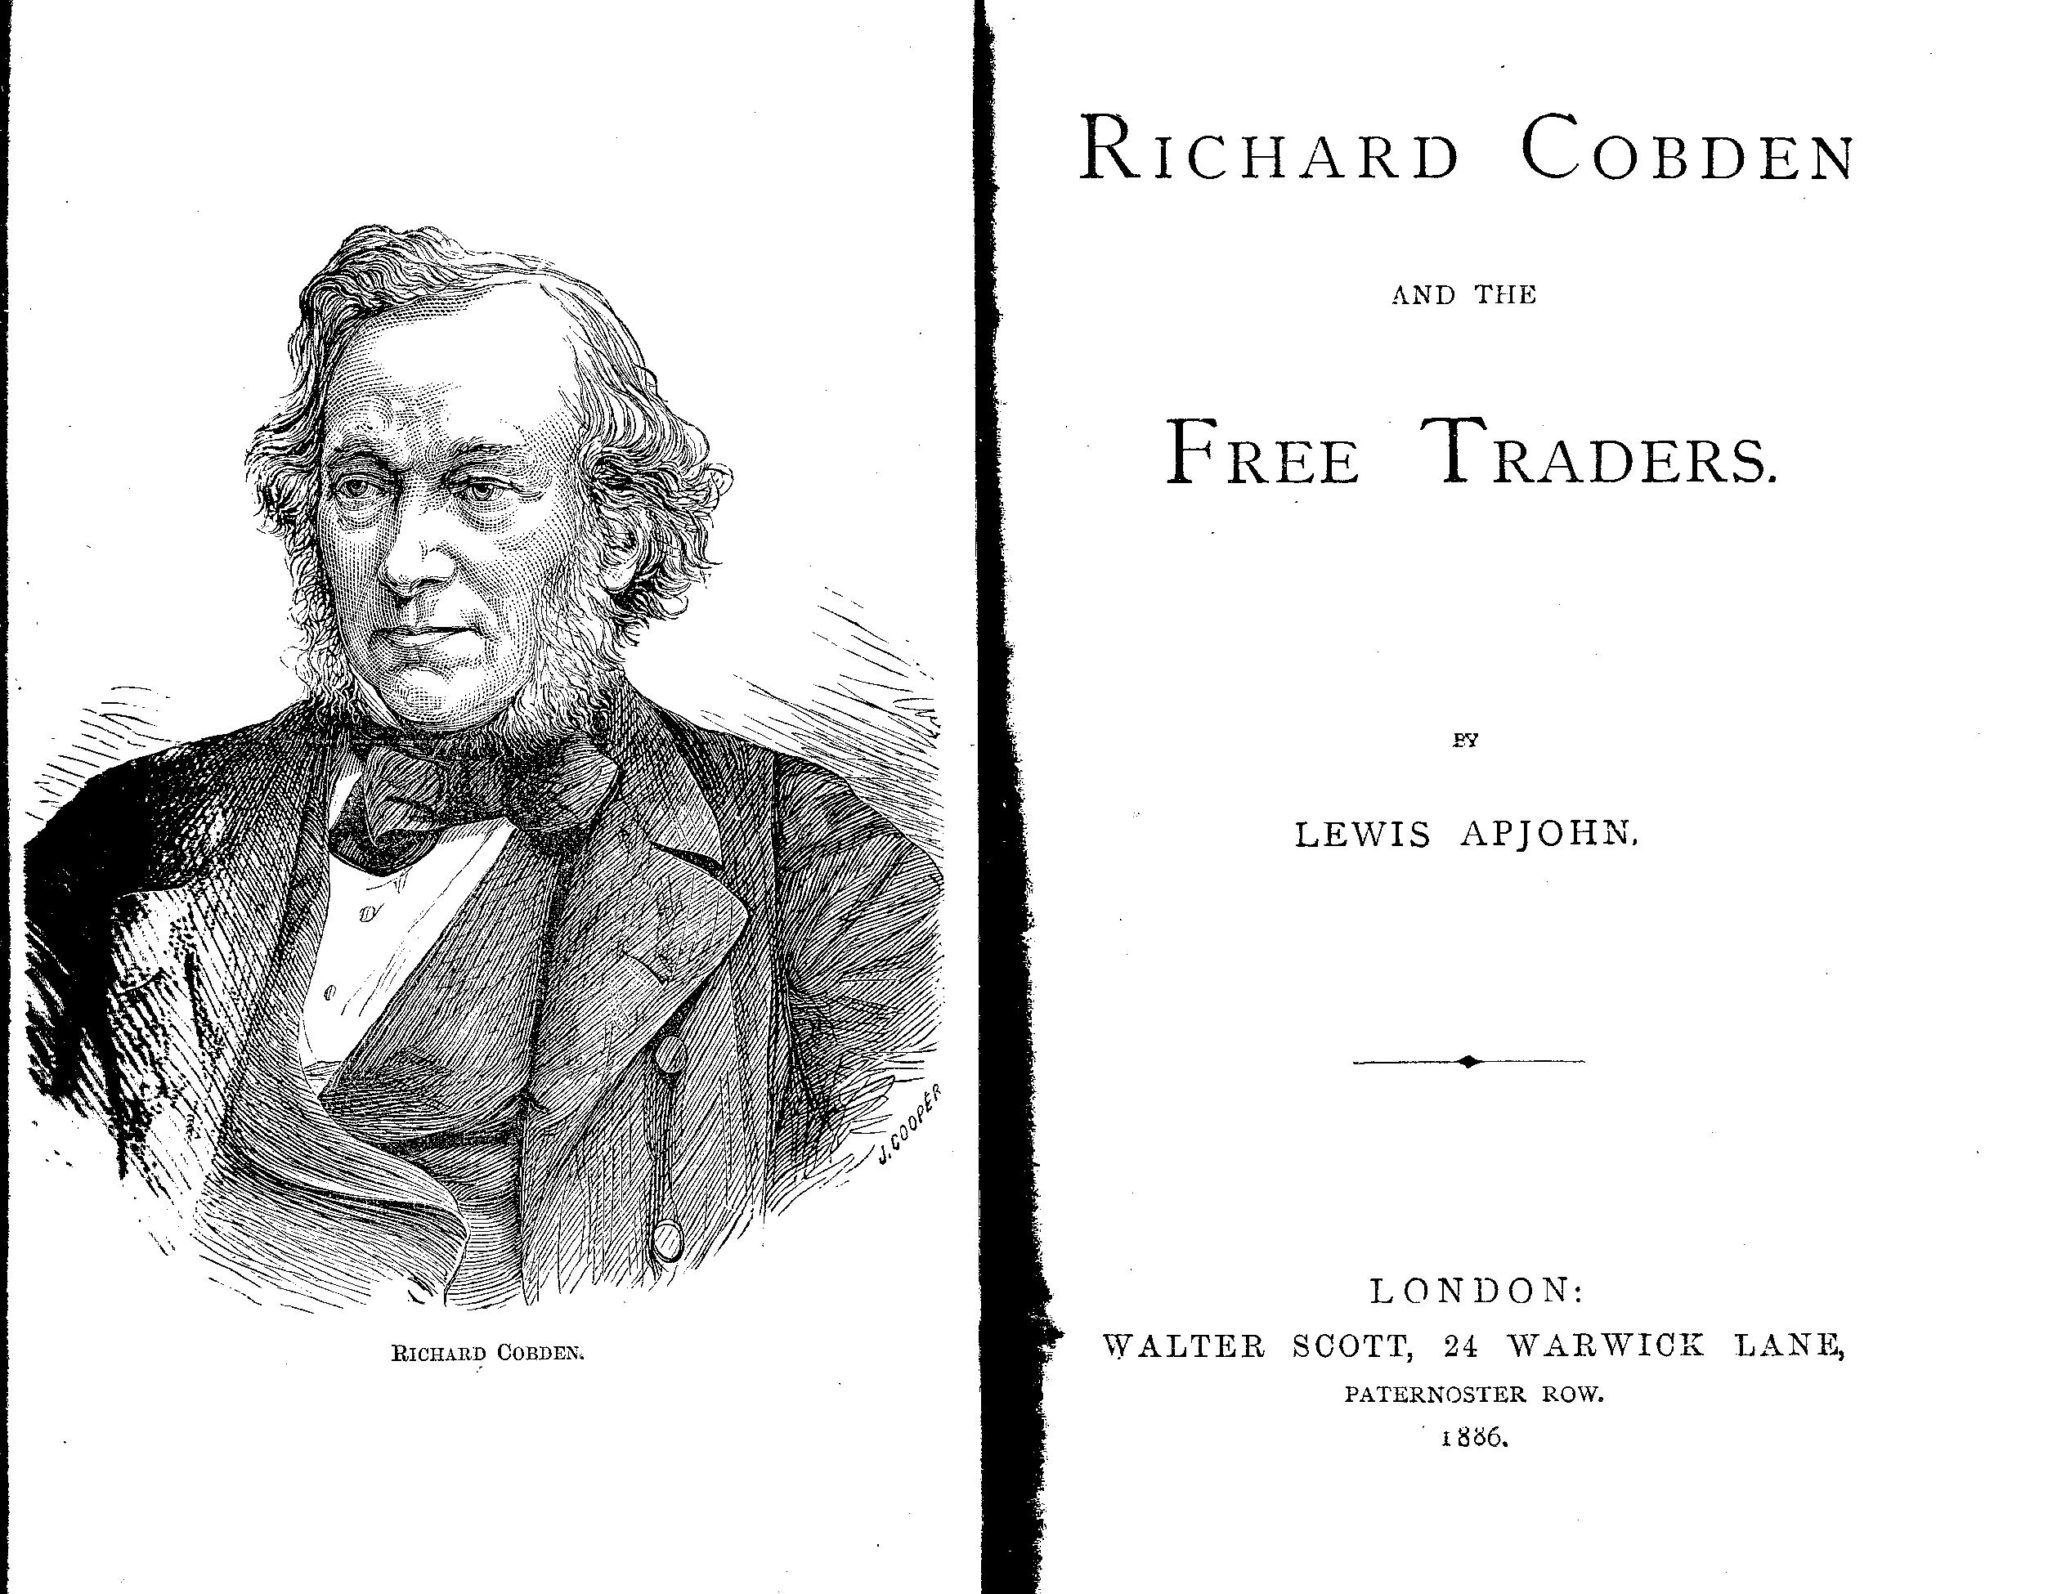 Richard Cobden and the Free Traders PSL/1886/0012b 1